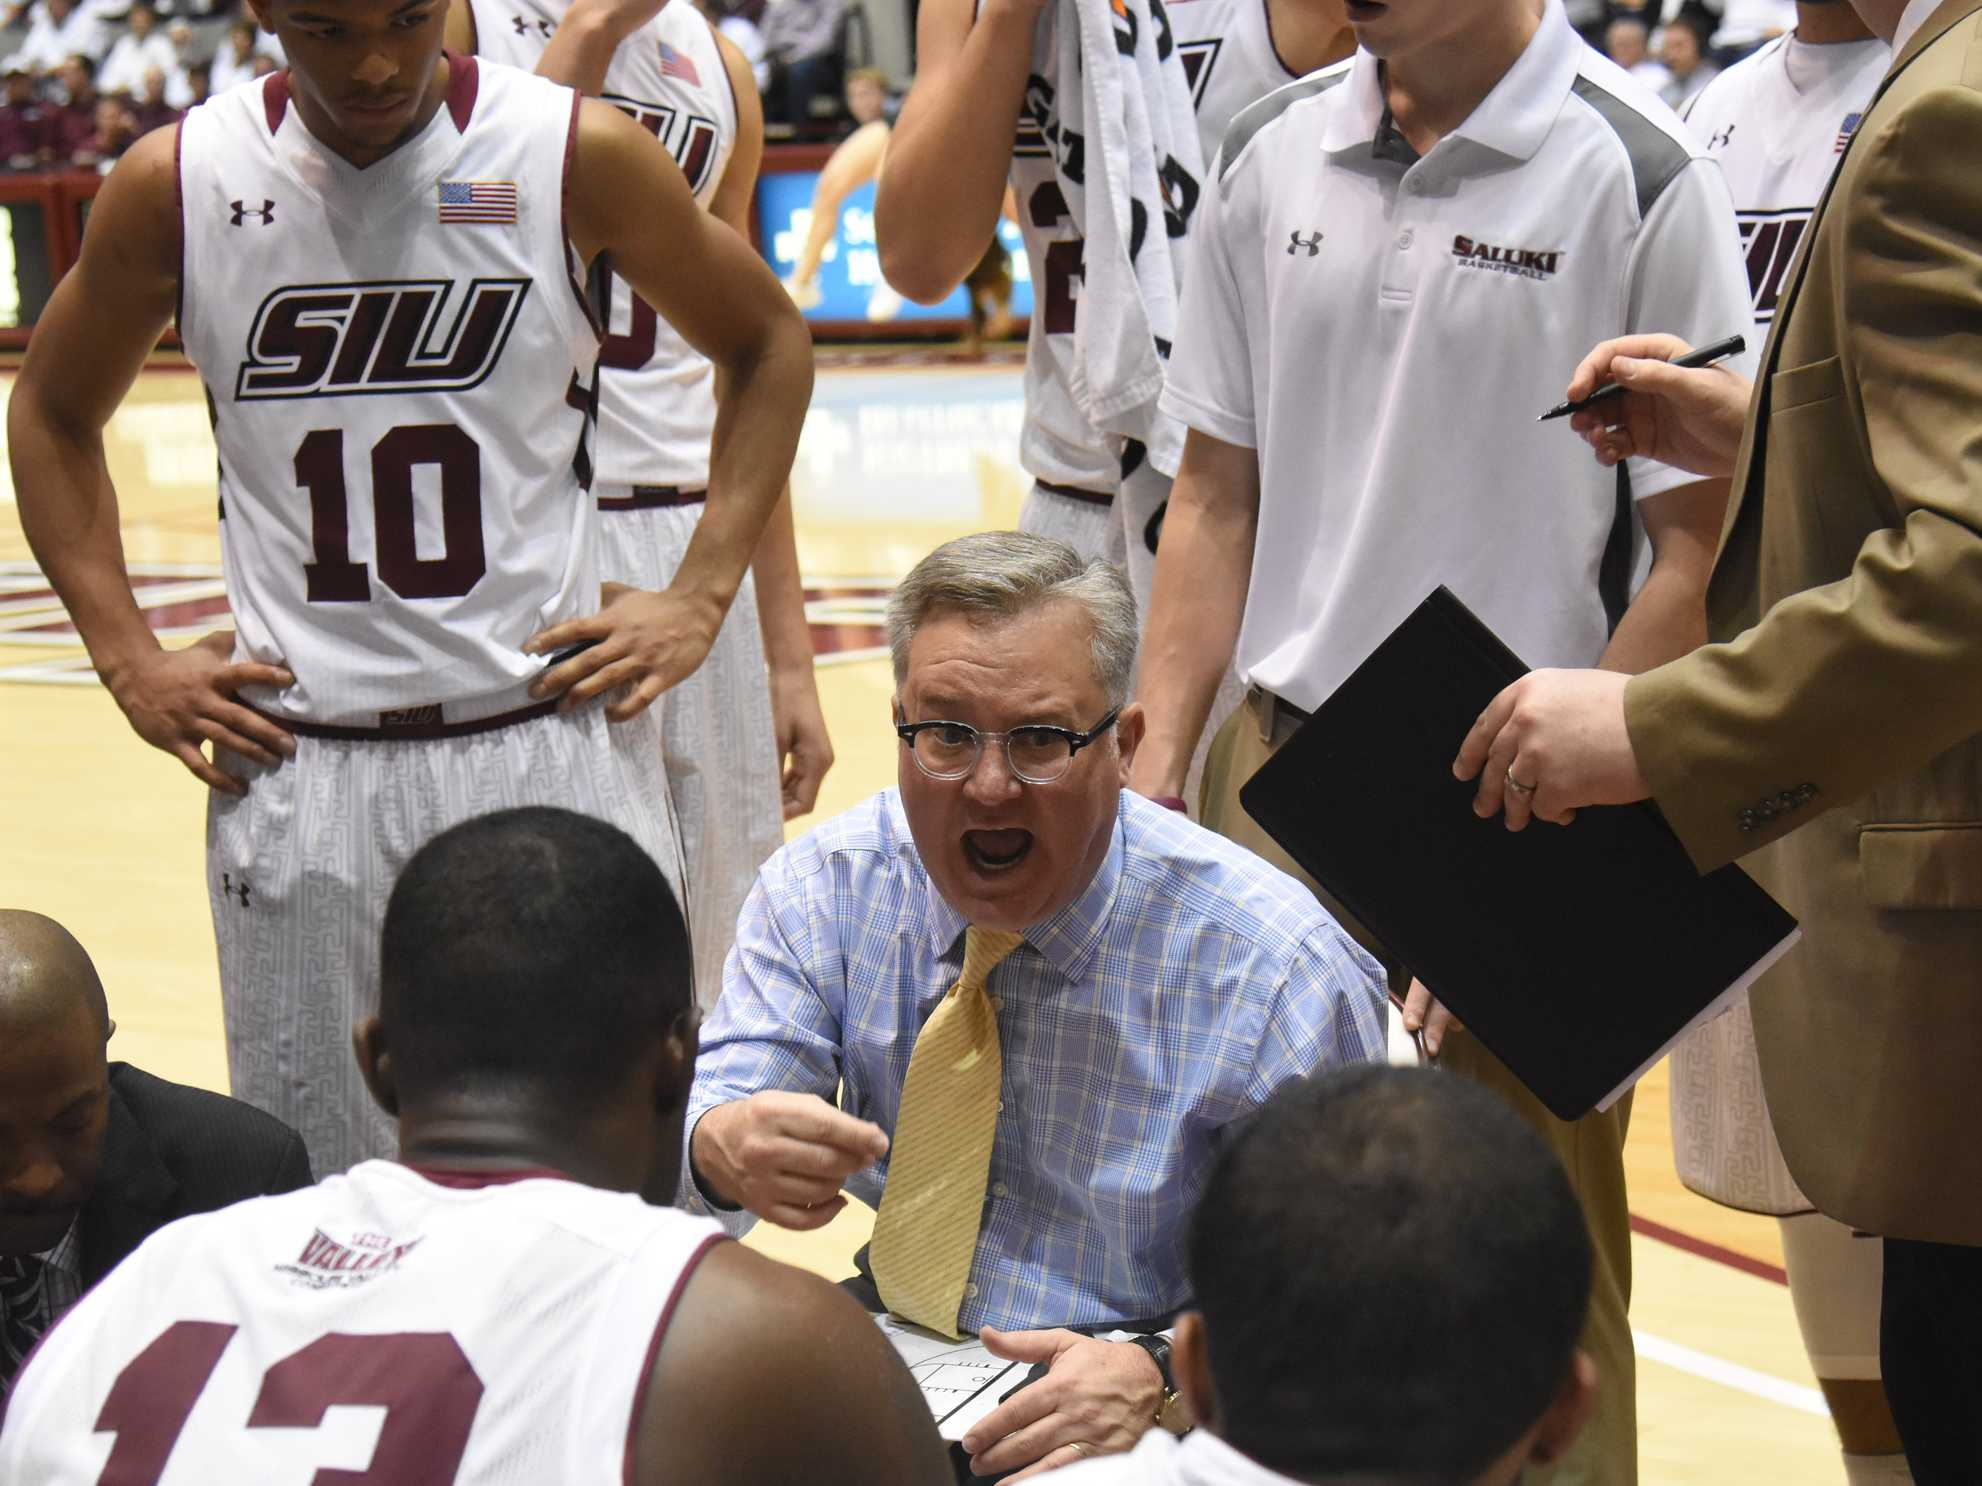 Coach Barry Hinson talks to his players Saturday, Jan. 21, 2017, during SIU's 58-57 loss against the Northern Iowa Panthers at SIU Arena. (Luke Nozicka | @lukenozicka)